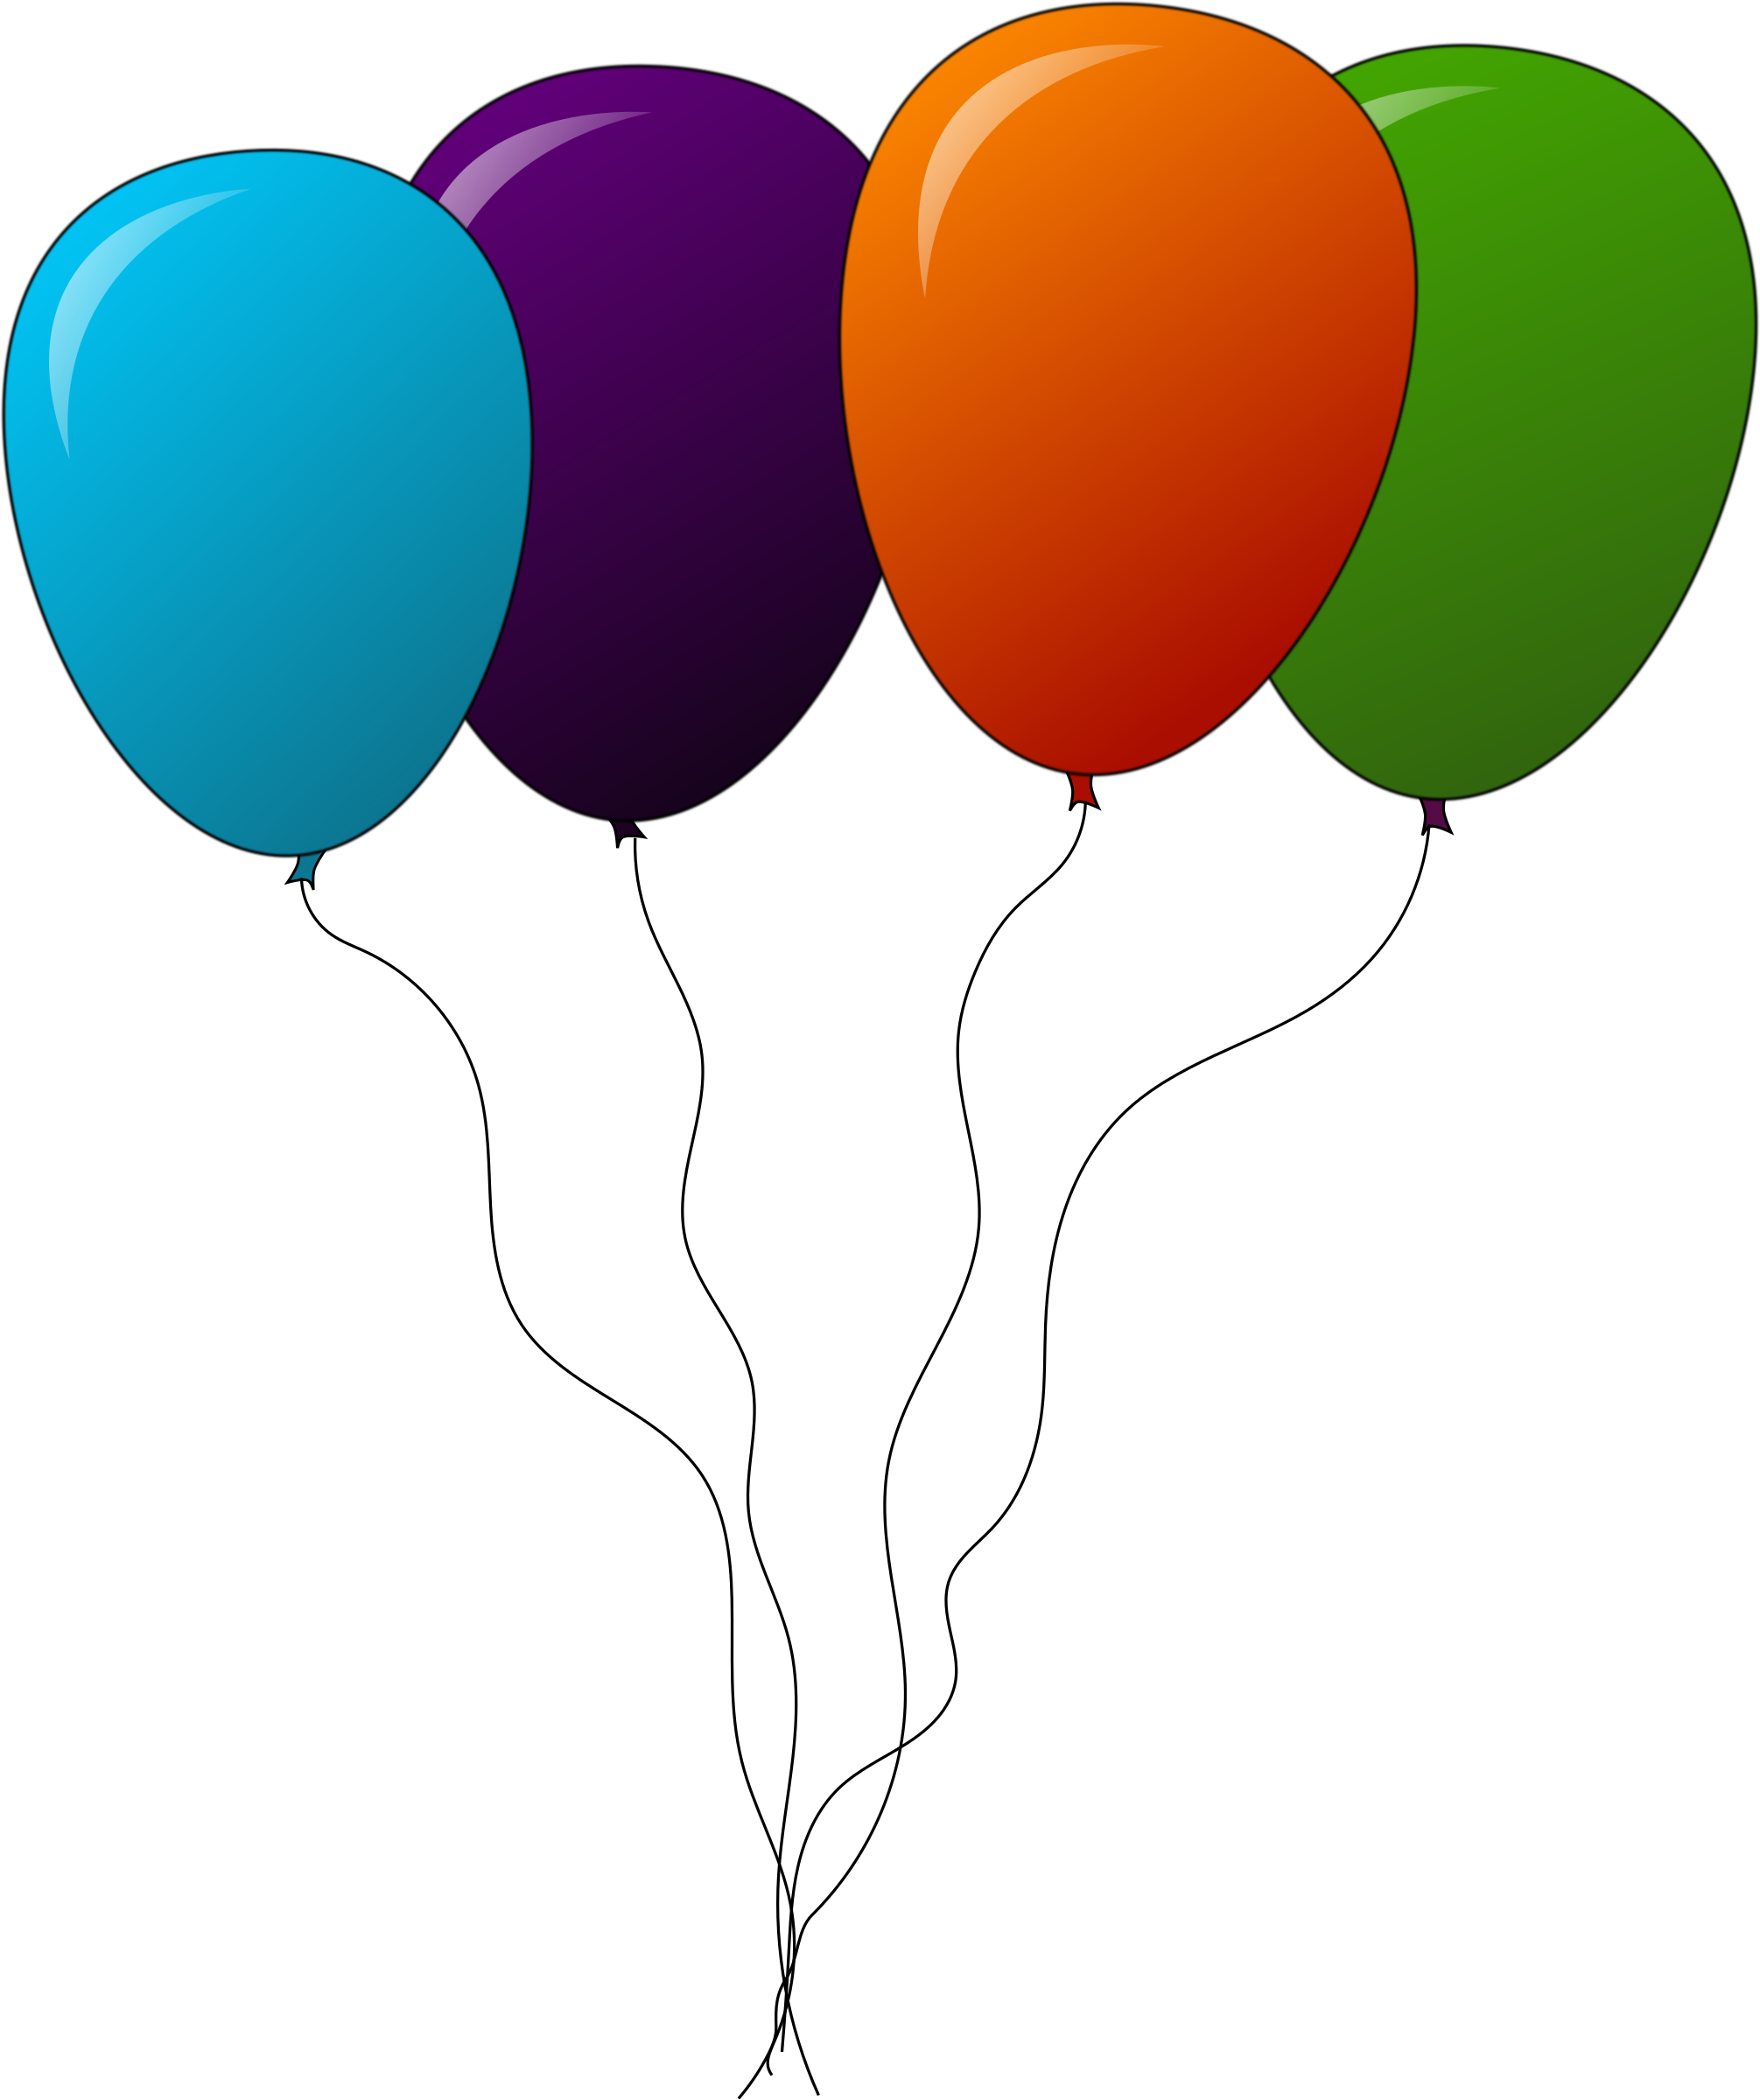 4 clipart balloon. Colored balloons big image